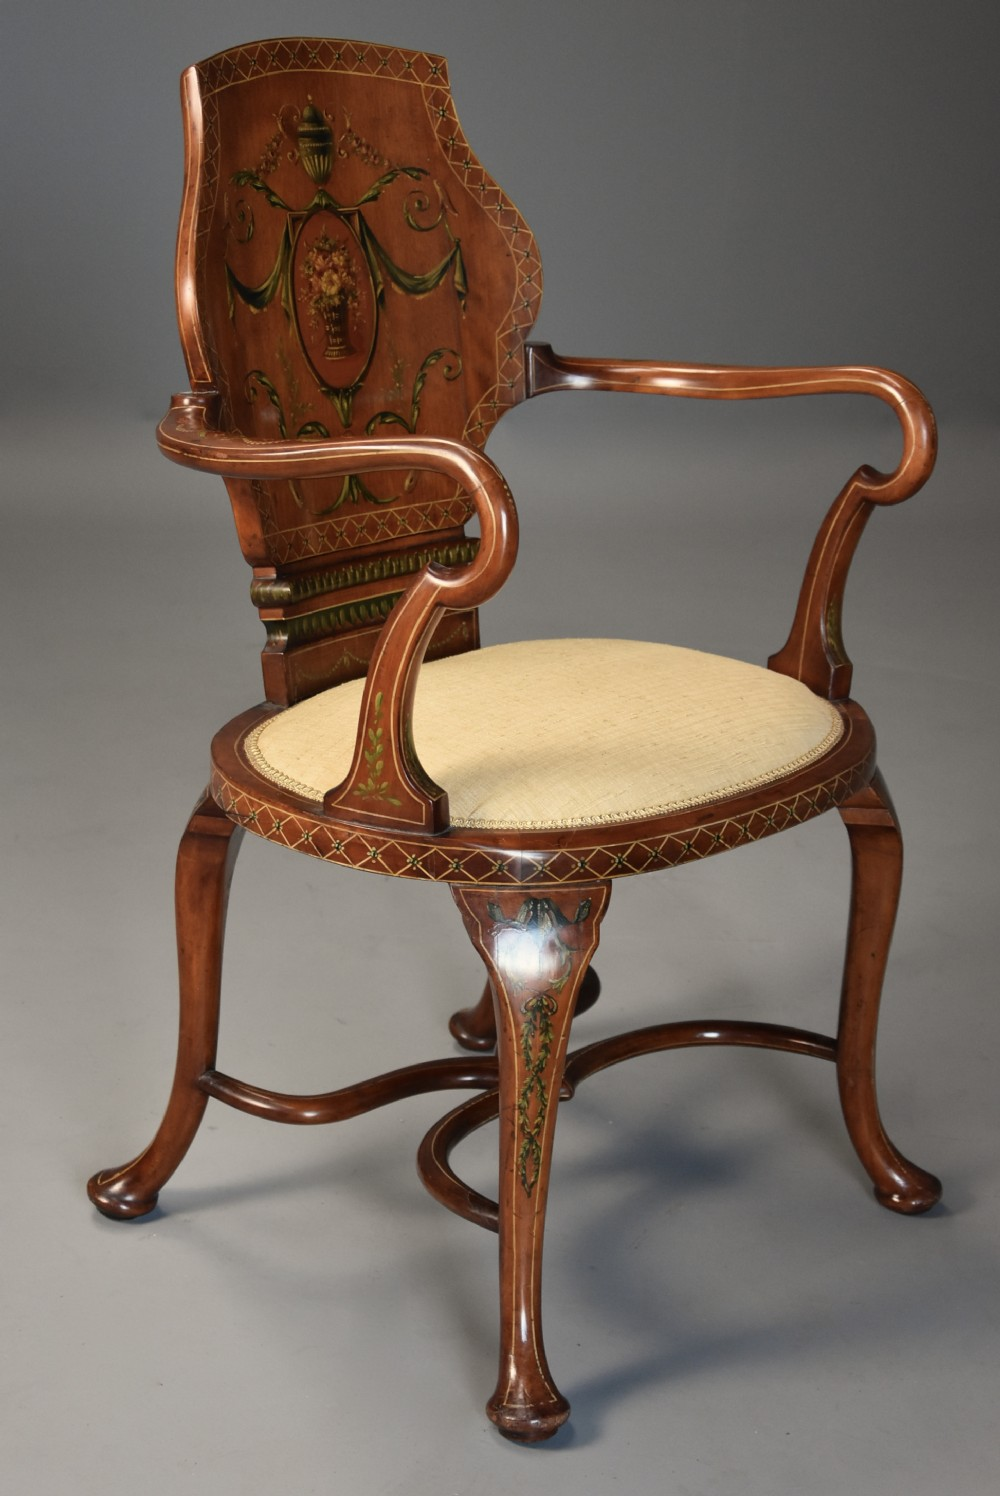 highly decorative edwardian satinwood painted armchair in the georgian style